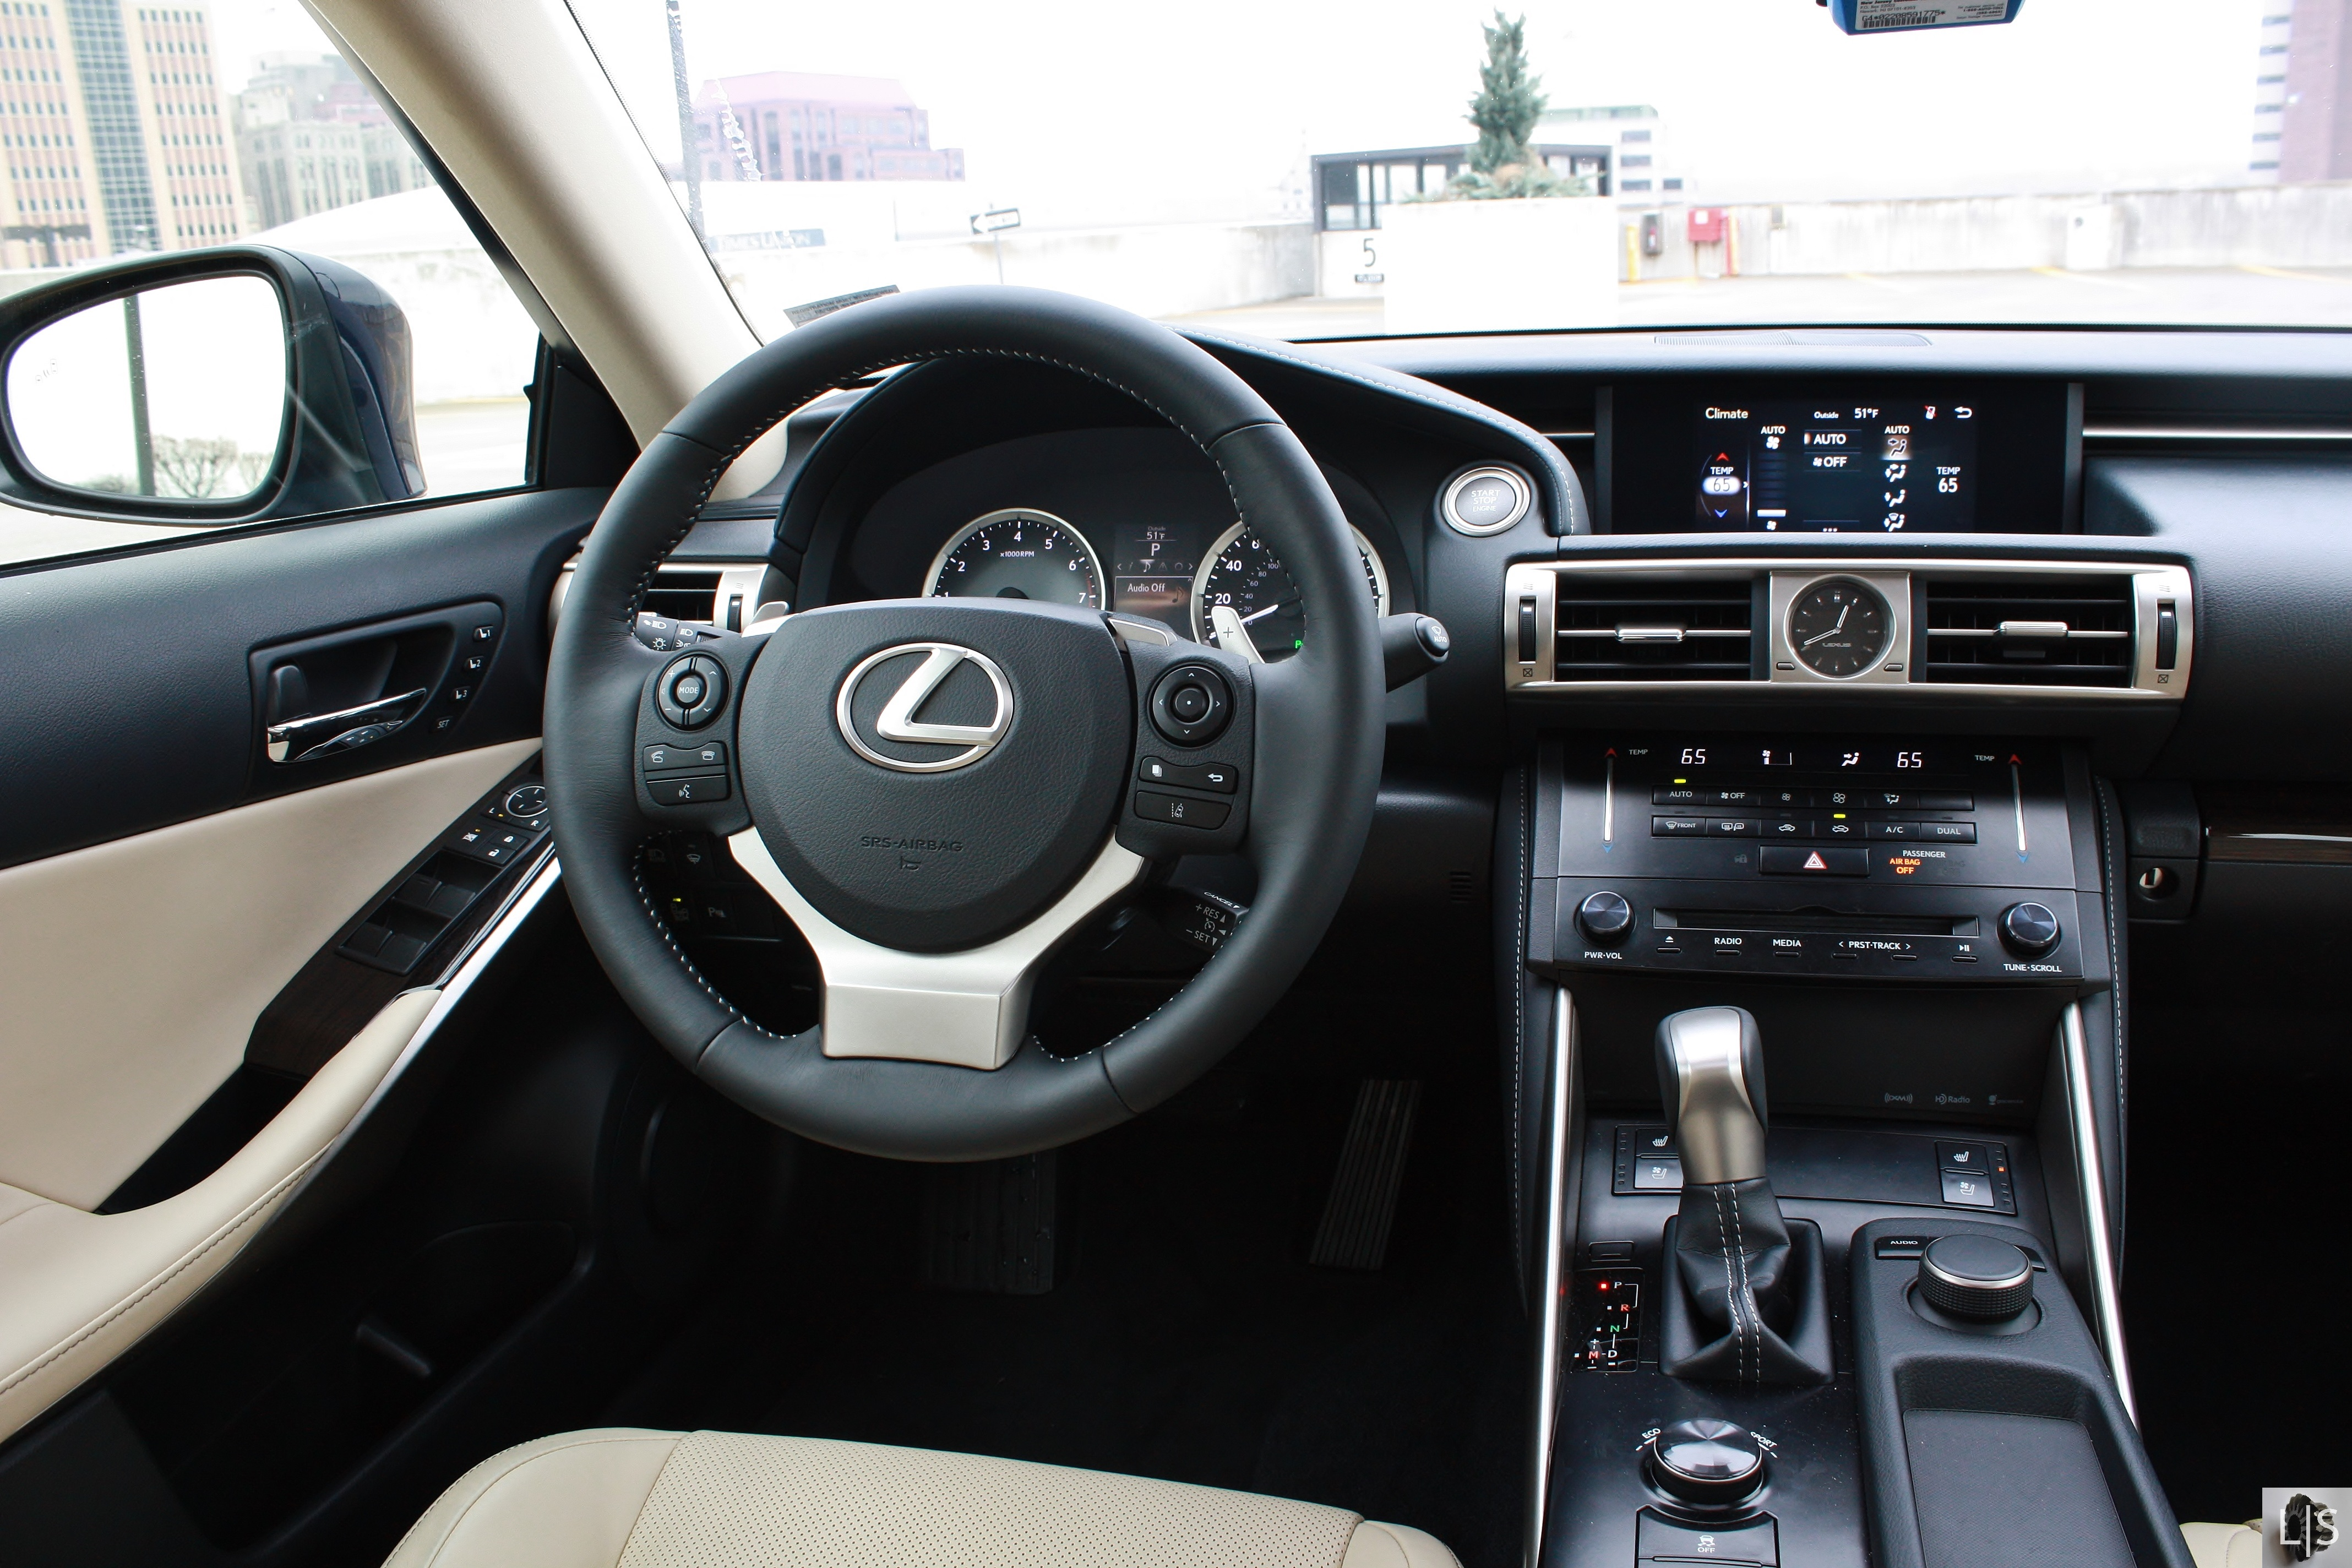 accord gallery lexus pursuit honda luxury your sedan sport is on posters and news turbo civic videos